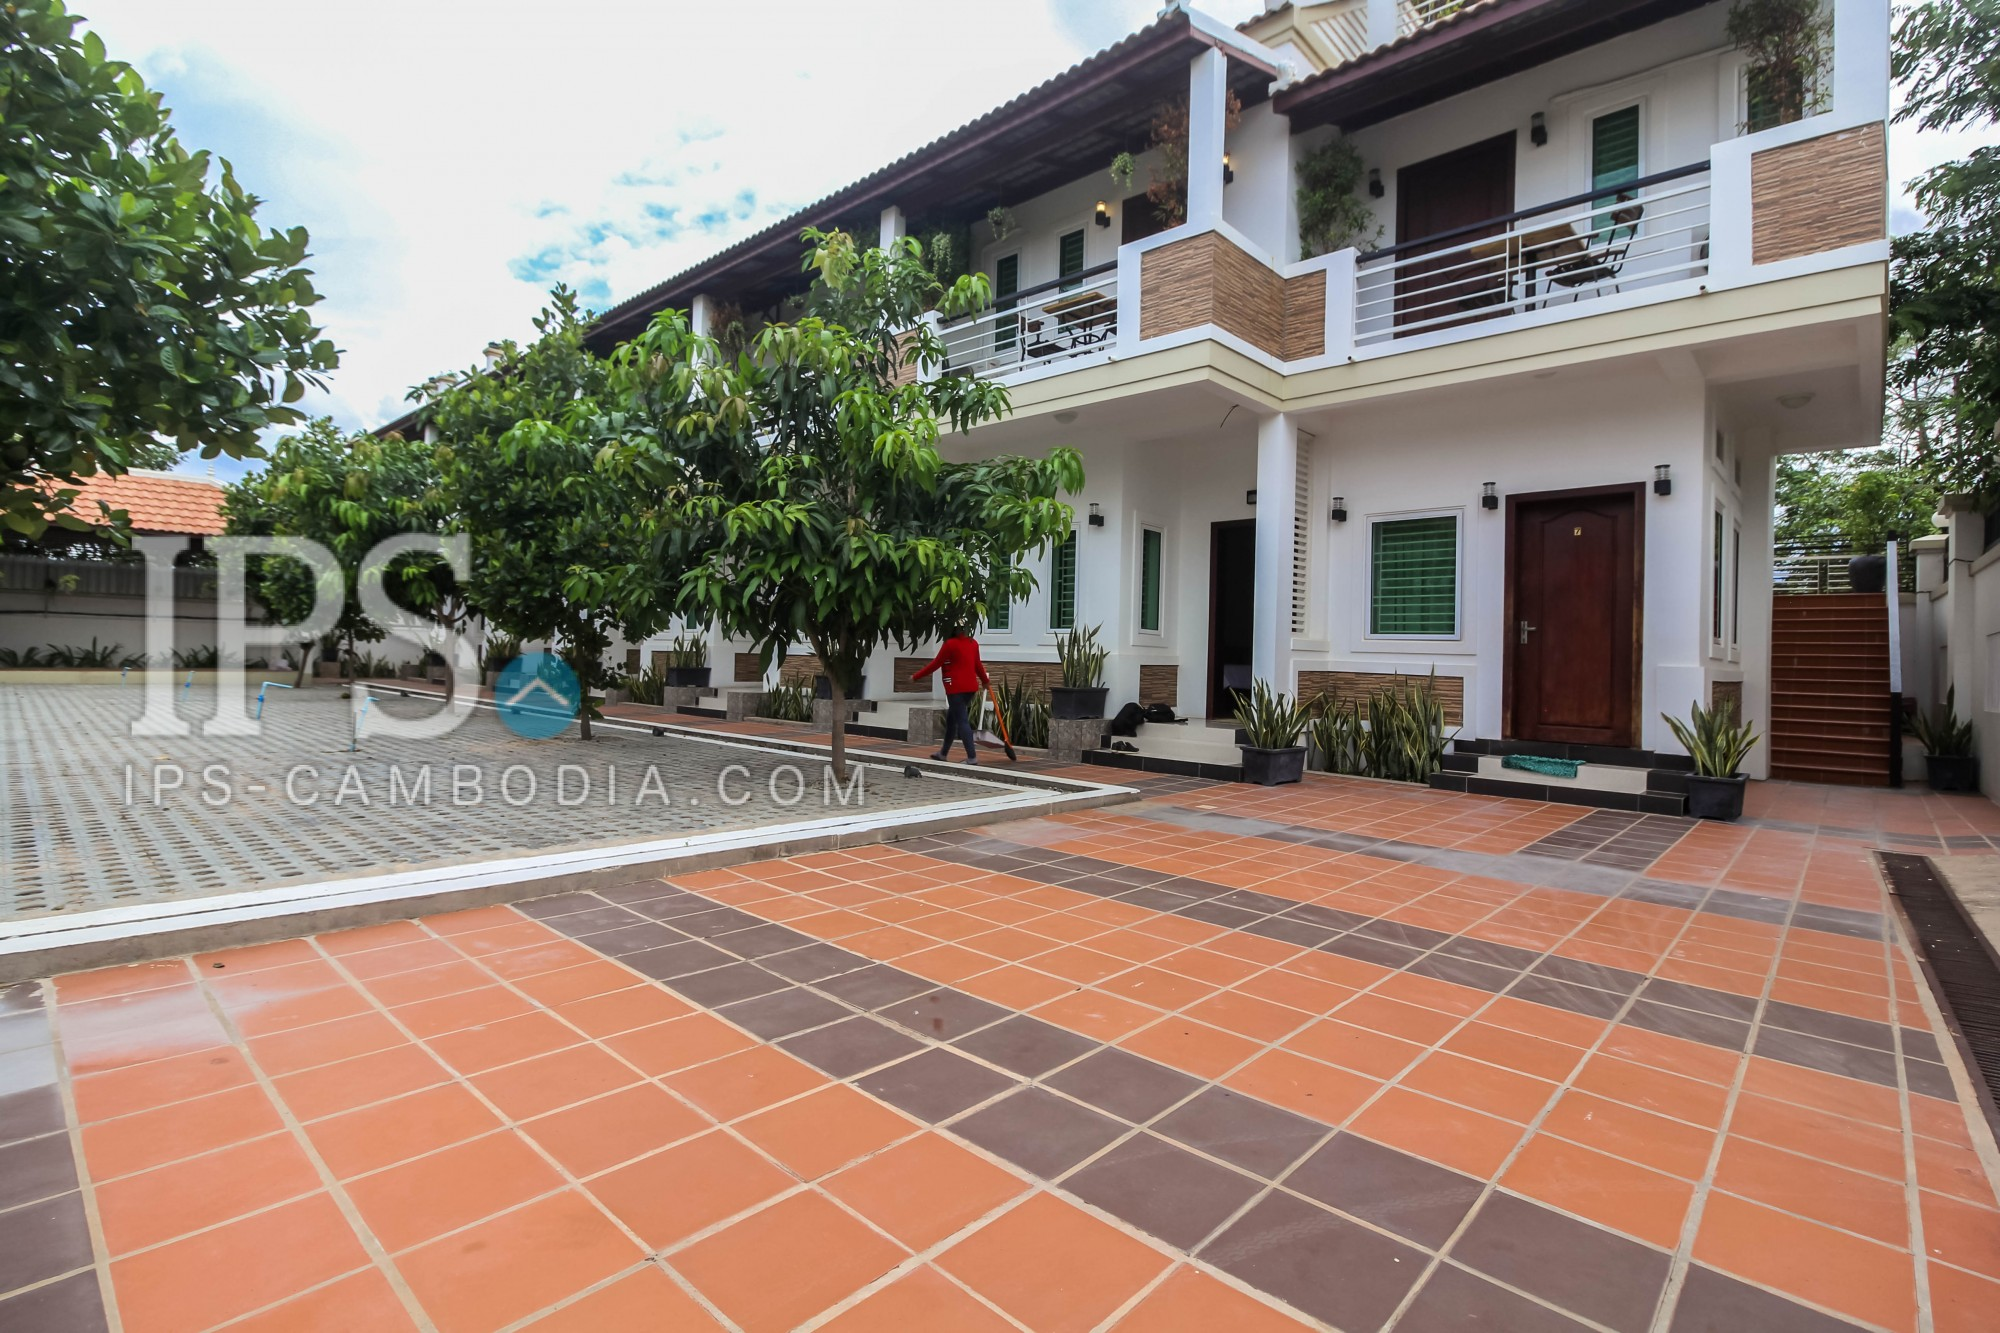 14 Rooms Commercial Building For Rent - Sra Ngae, Siem Reap